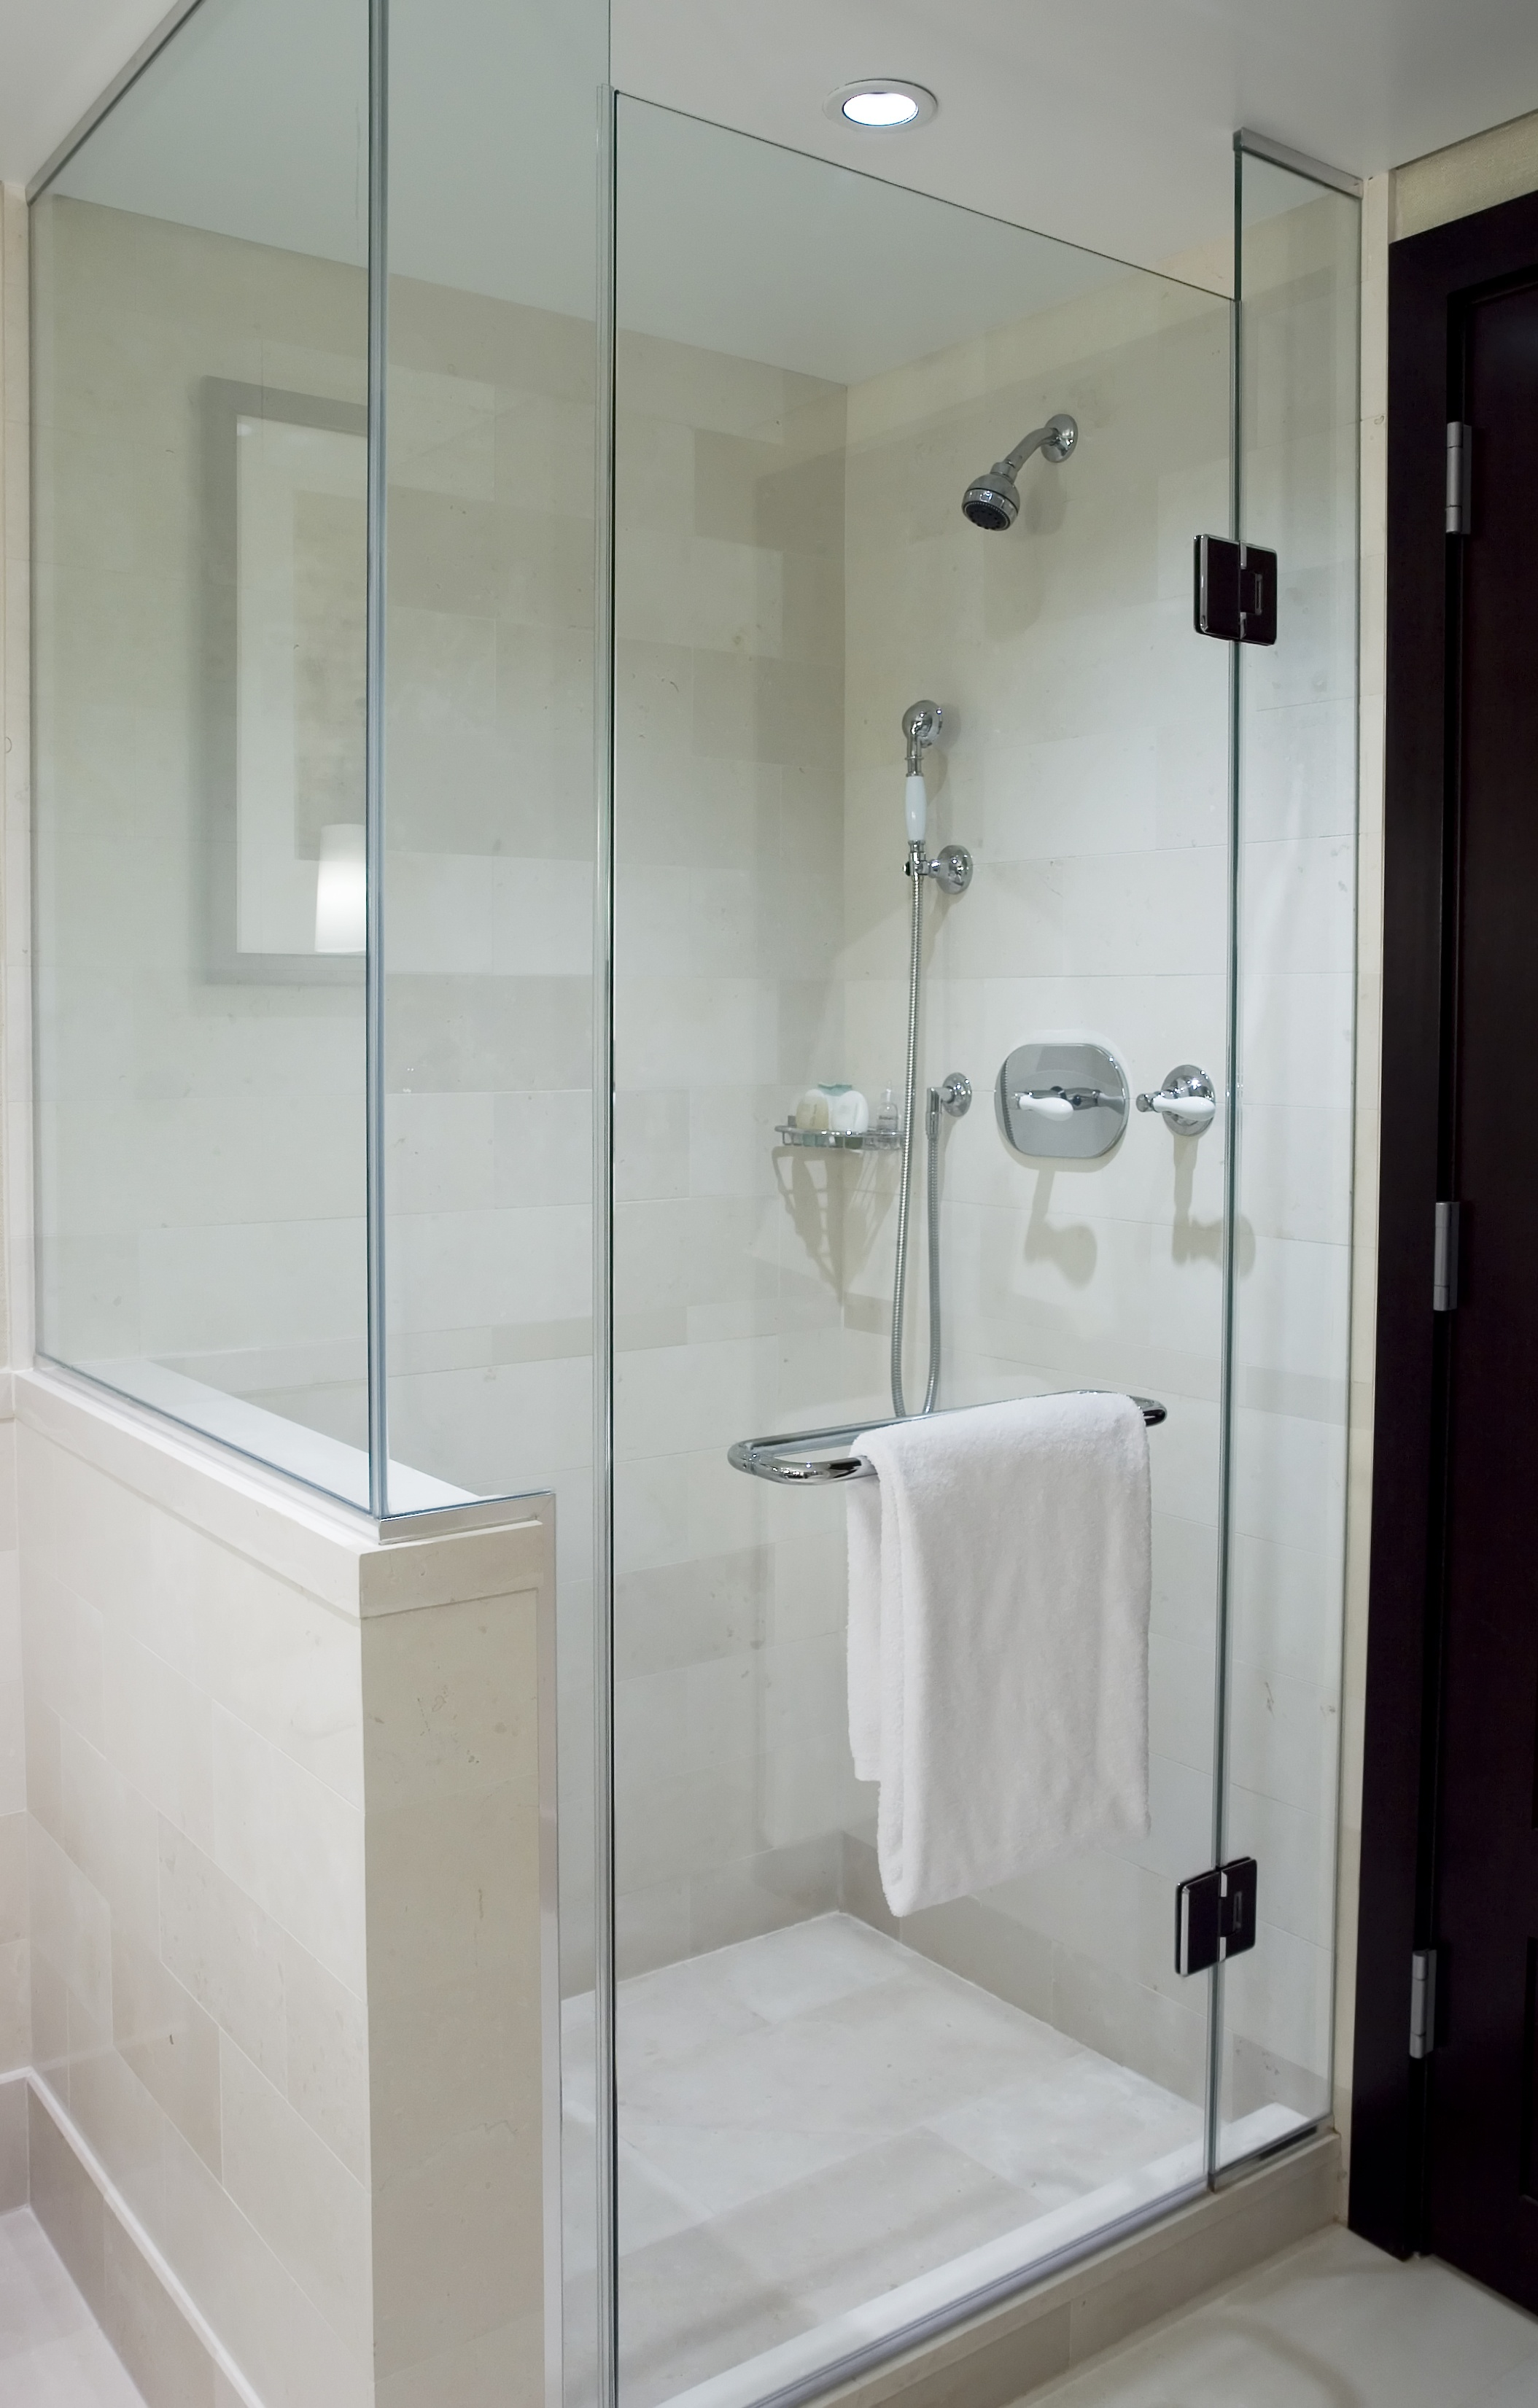 custom glass doors for showers. Custom Glass Shower Doors and Tub Enclosures Residential Windows Glendale  Replacement